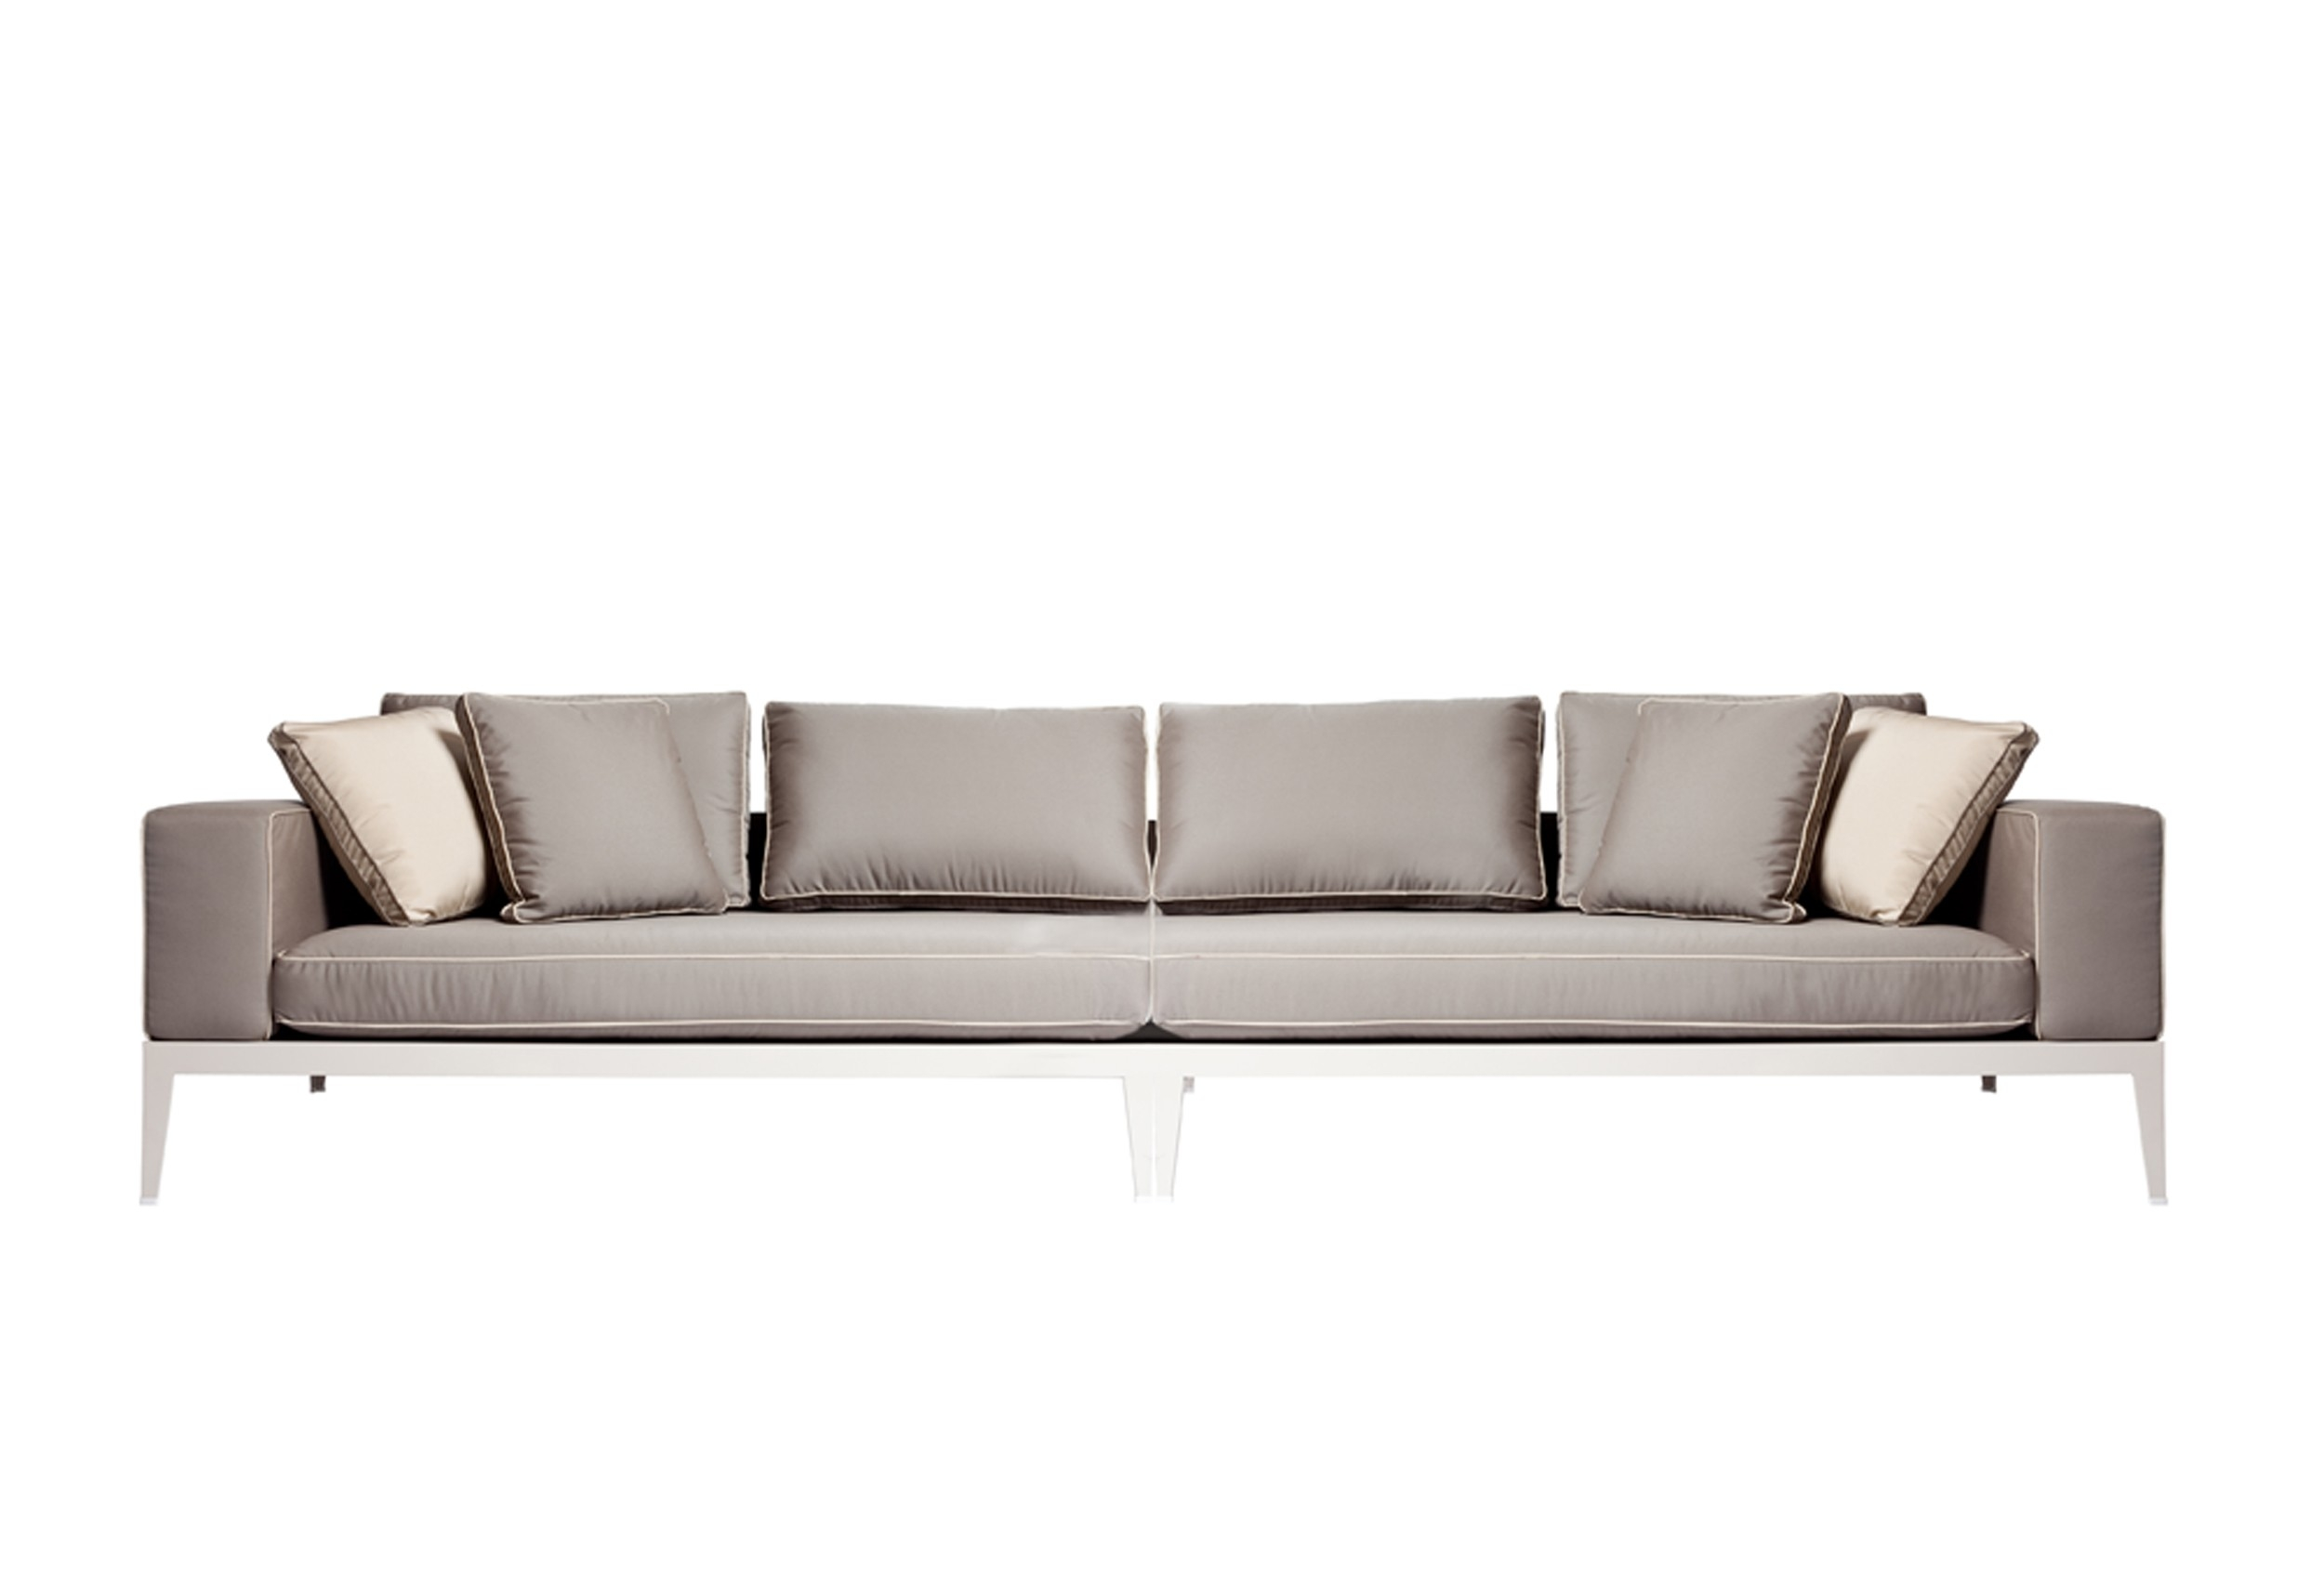 Balmoral 4 Seater Sofa Viesso Intended For Four Seater Sofas (Image 5 of 15)